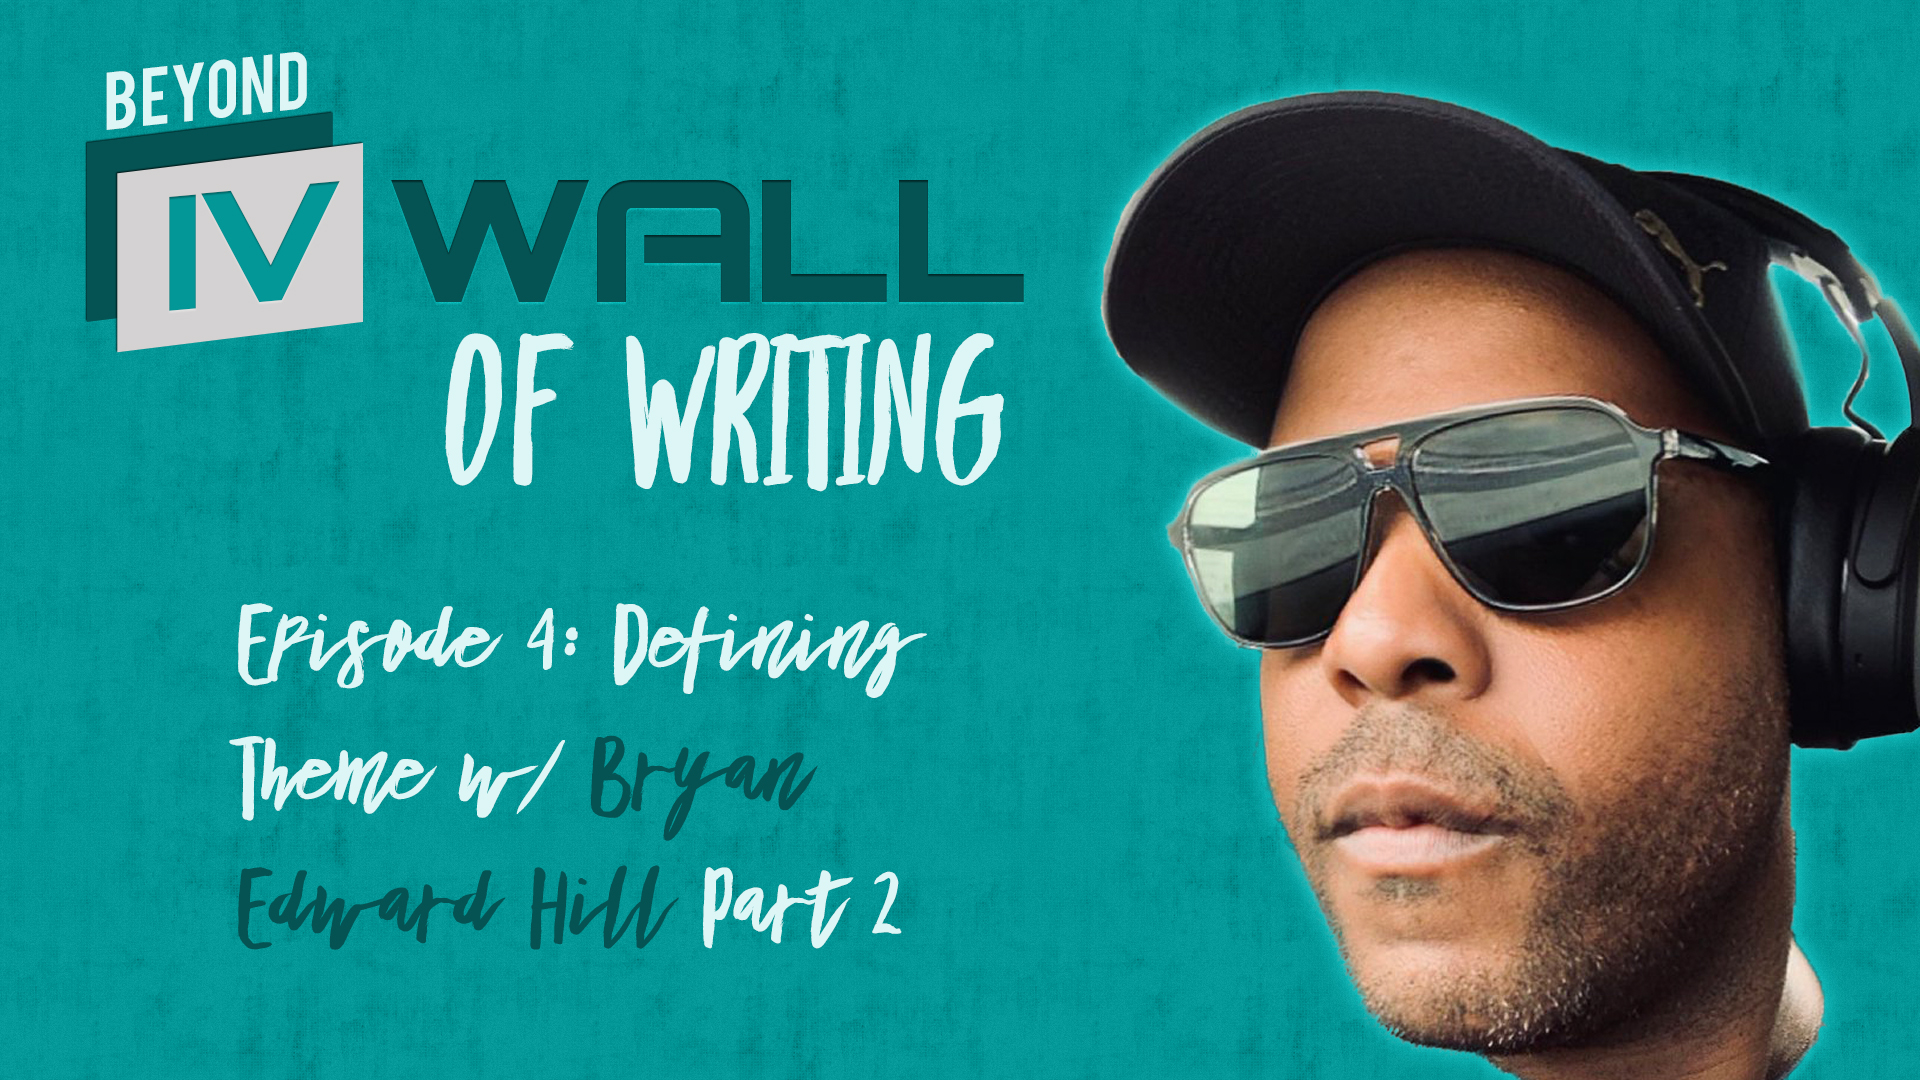 Beyond the IVWall of Writing: Episode 4- Defining Theme w/ Bryan Edward Hill, Part 2